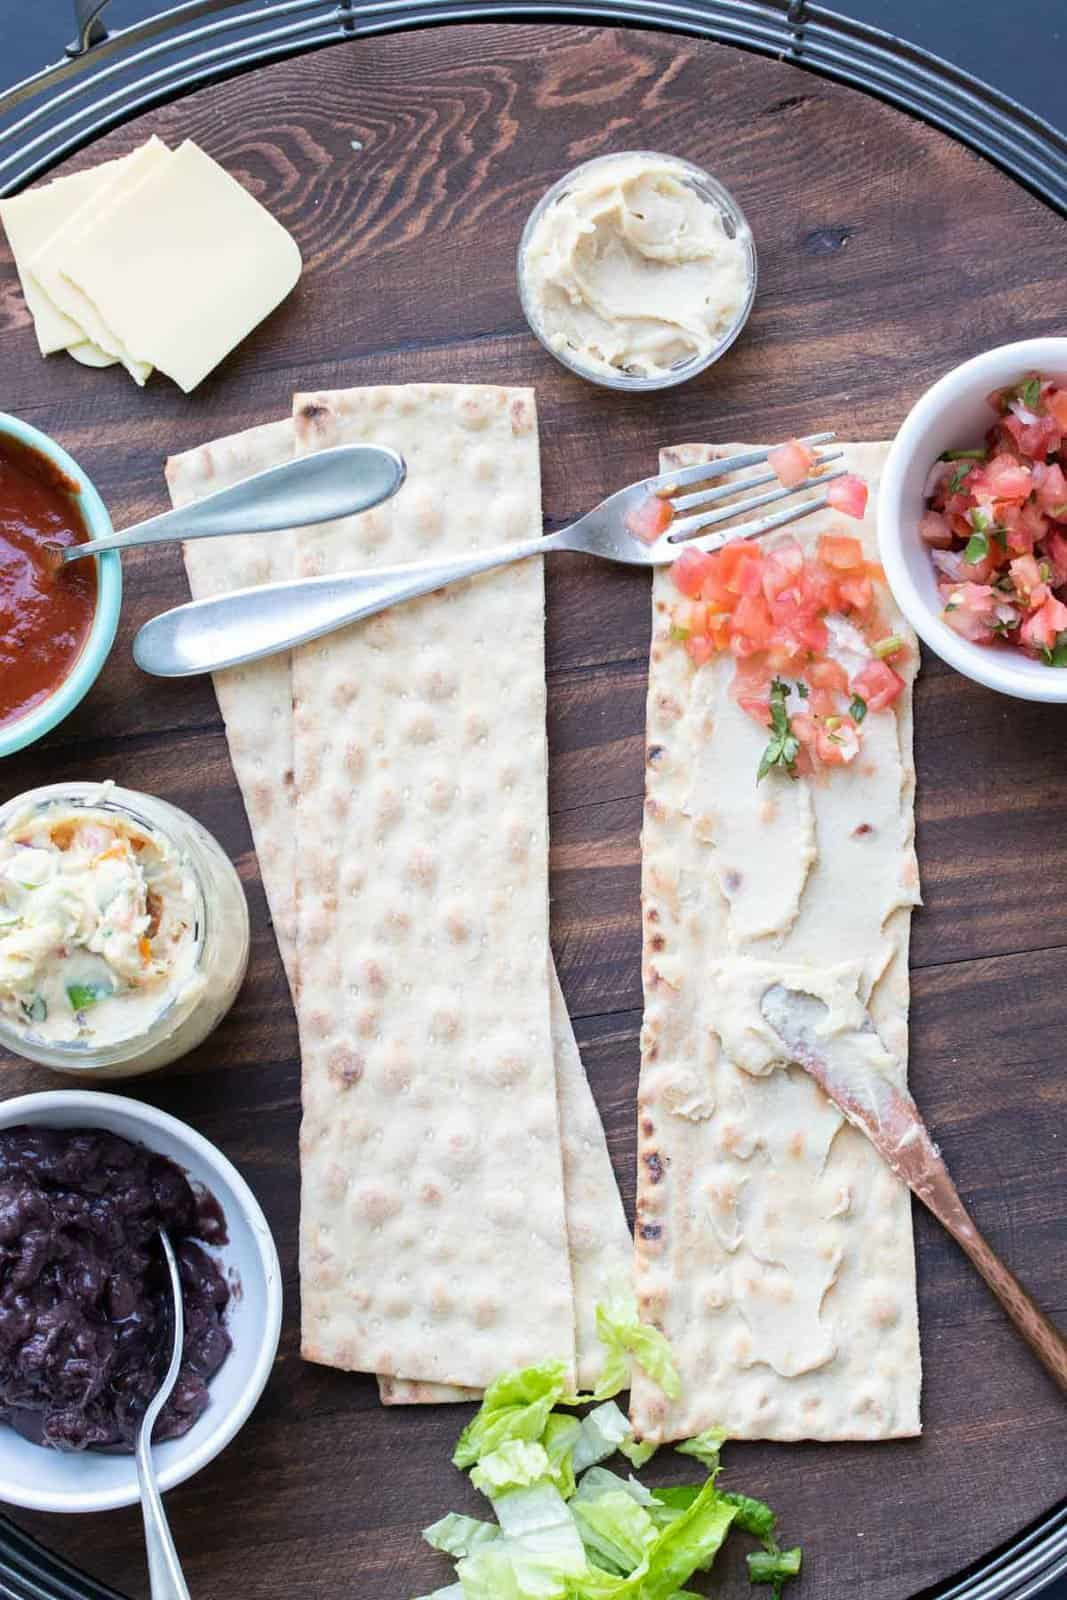 Knife spreading cream cheese and fork spreading salsa on slices of lavash bread